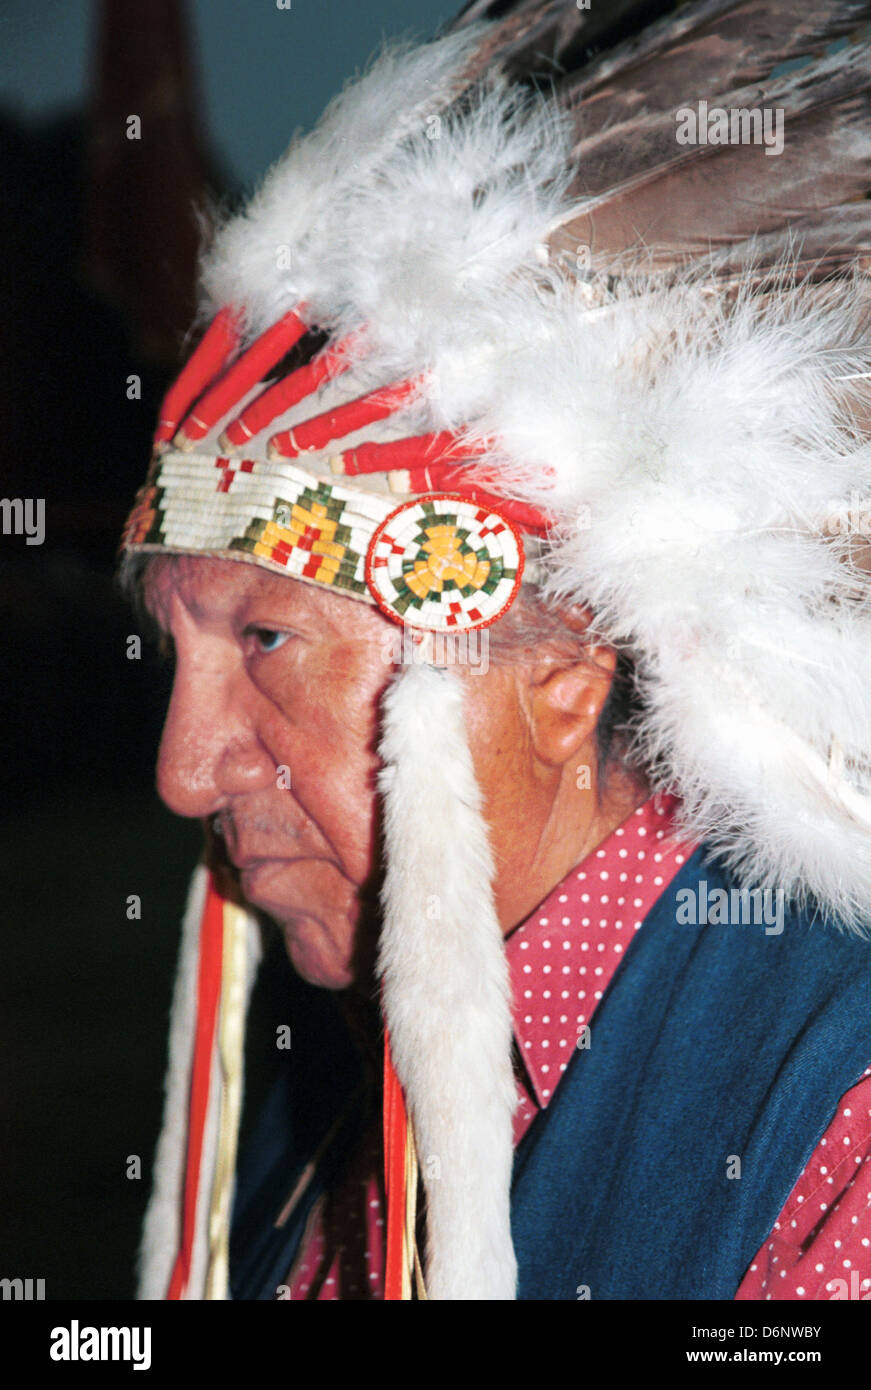 Chief, Pine Ridge Indian Reservation South Dakota, Lakota, Native American Indian, Sioux, Wazi Ahanhan Oyanke, Stock Photo